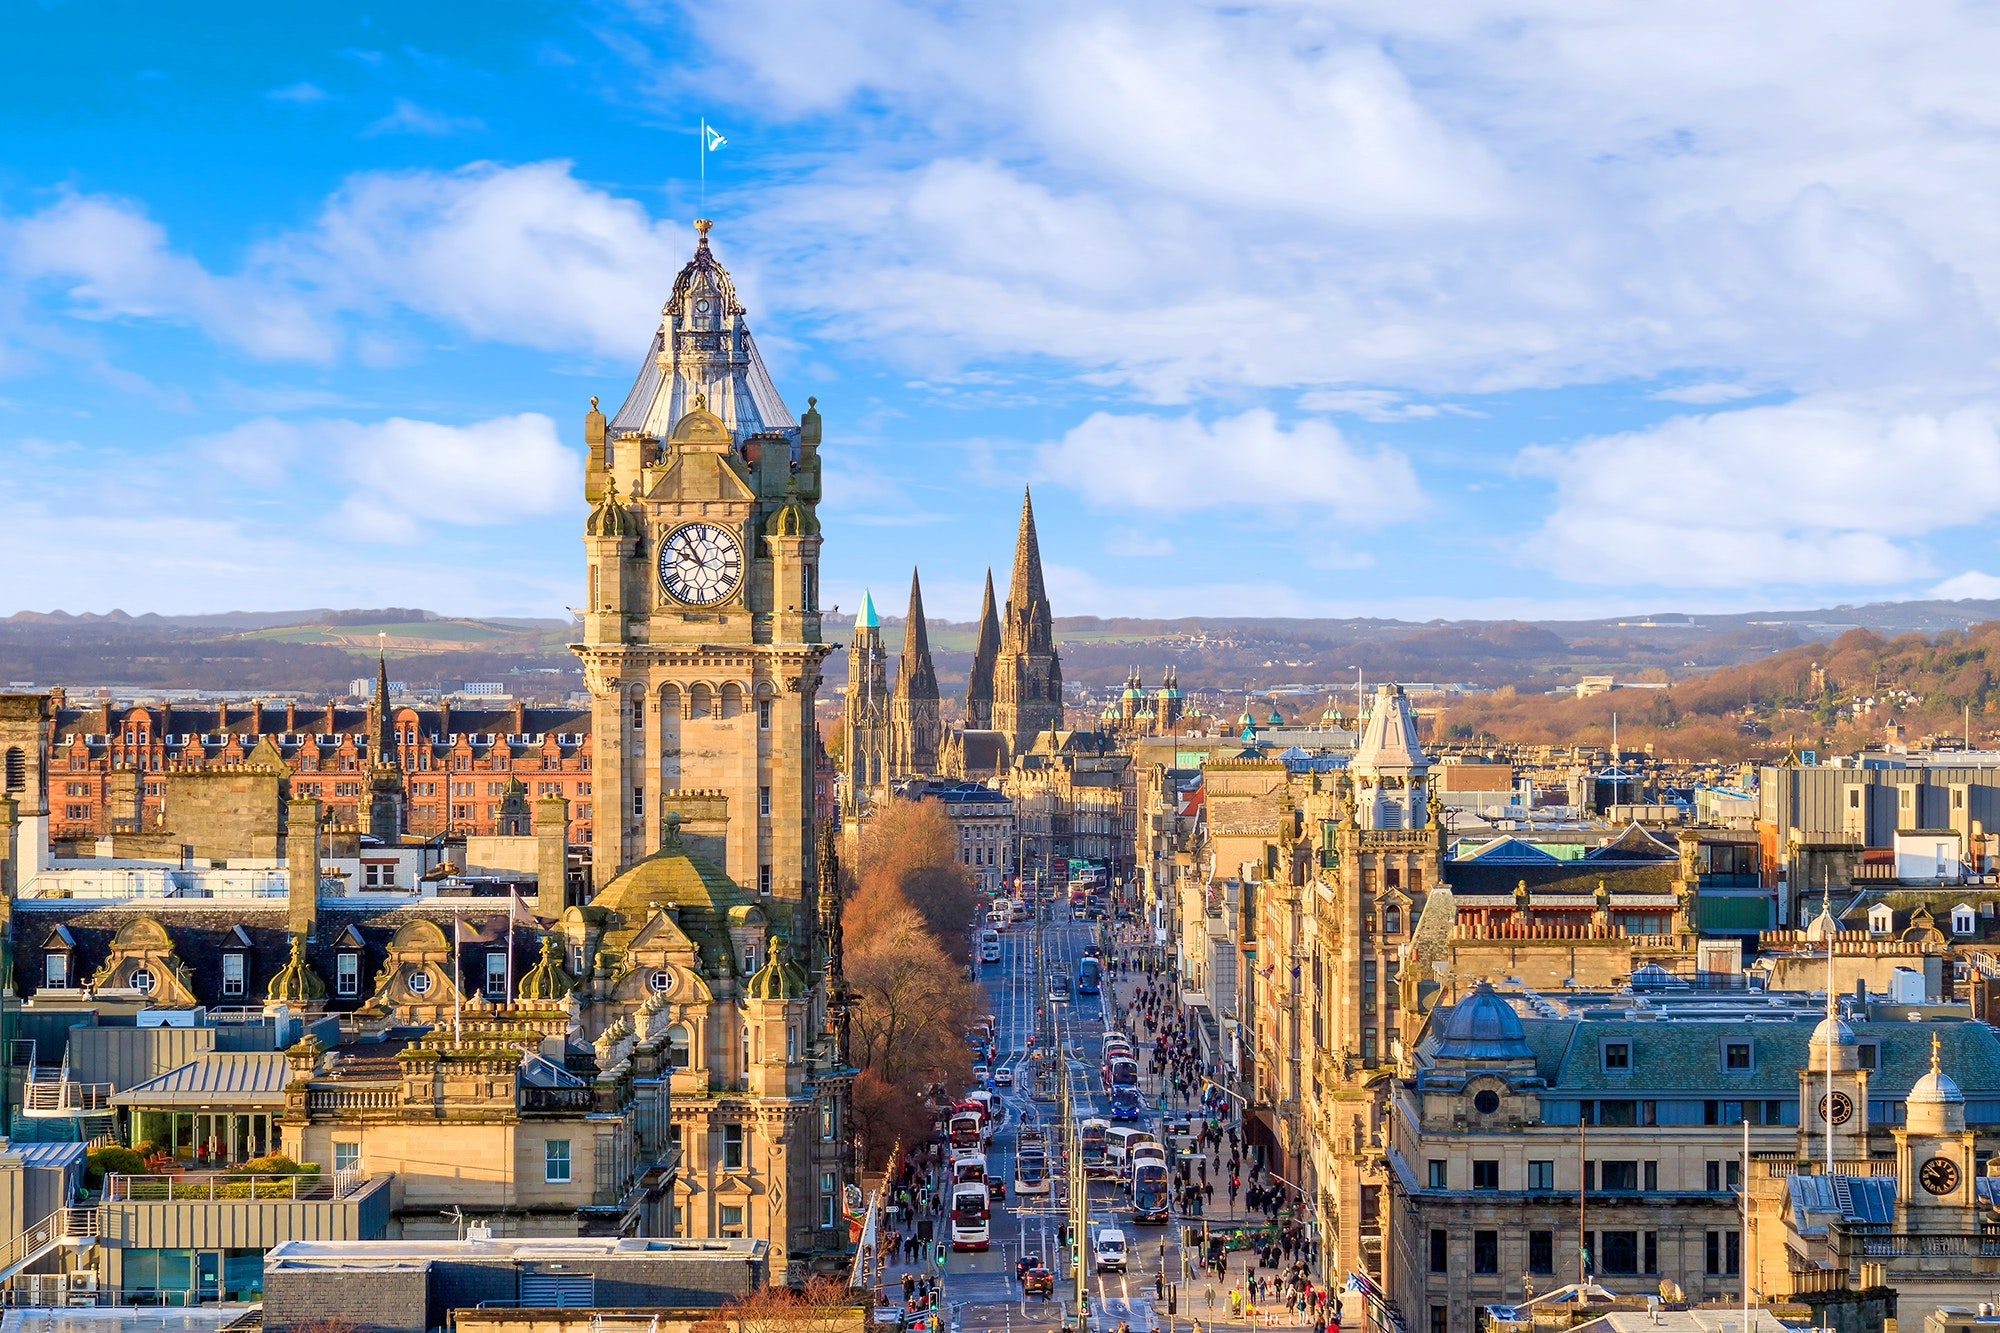 Direct flights to Edinburgh begin next spring from Boston.